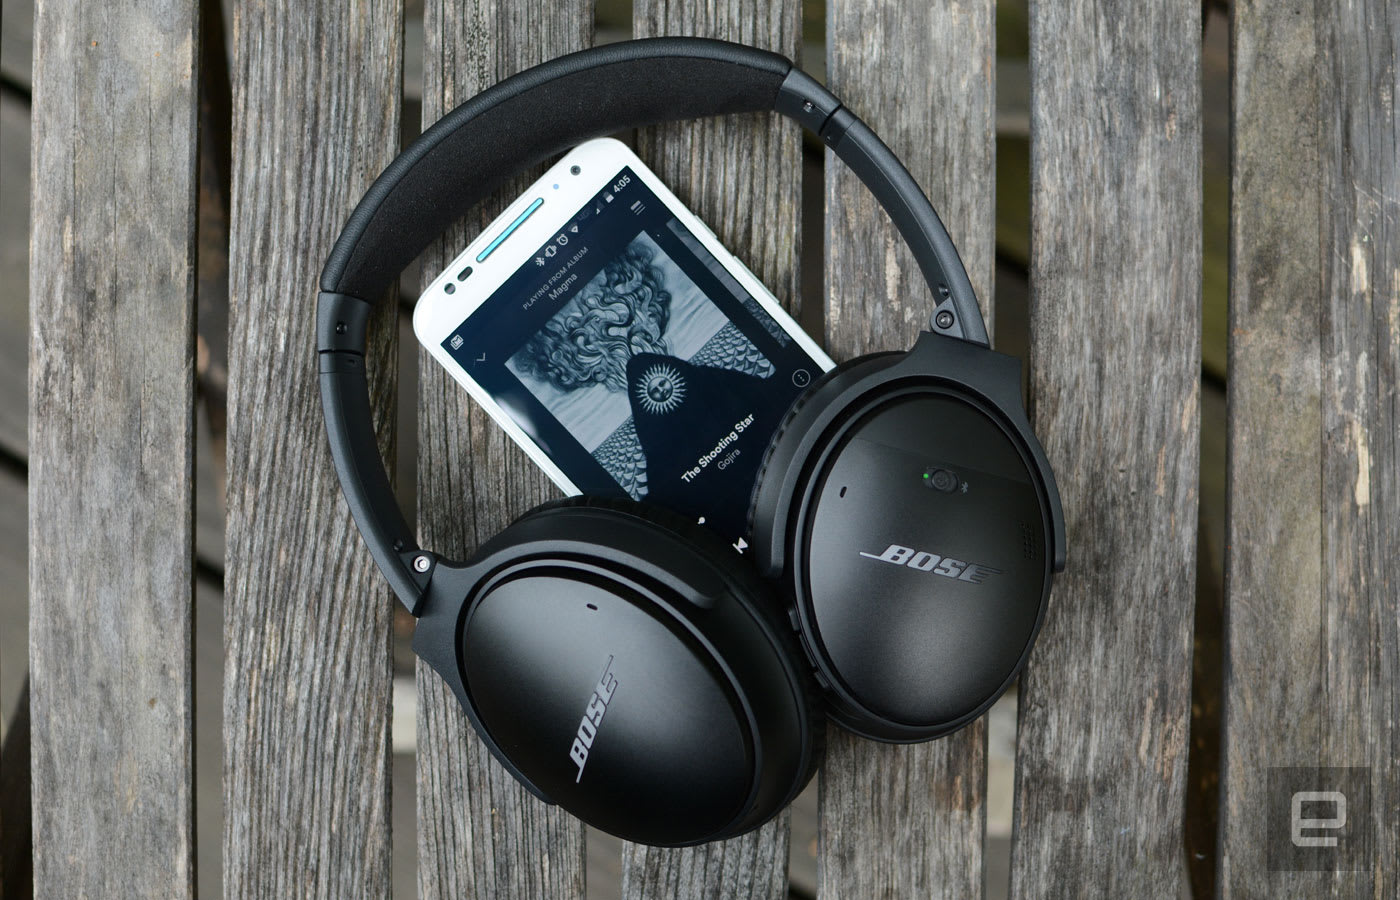 46d53ed8c0a Bose's best headphones are even better wireless